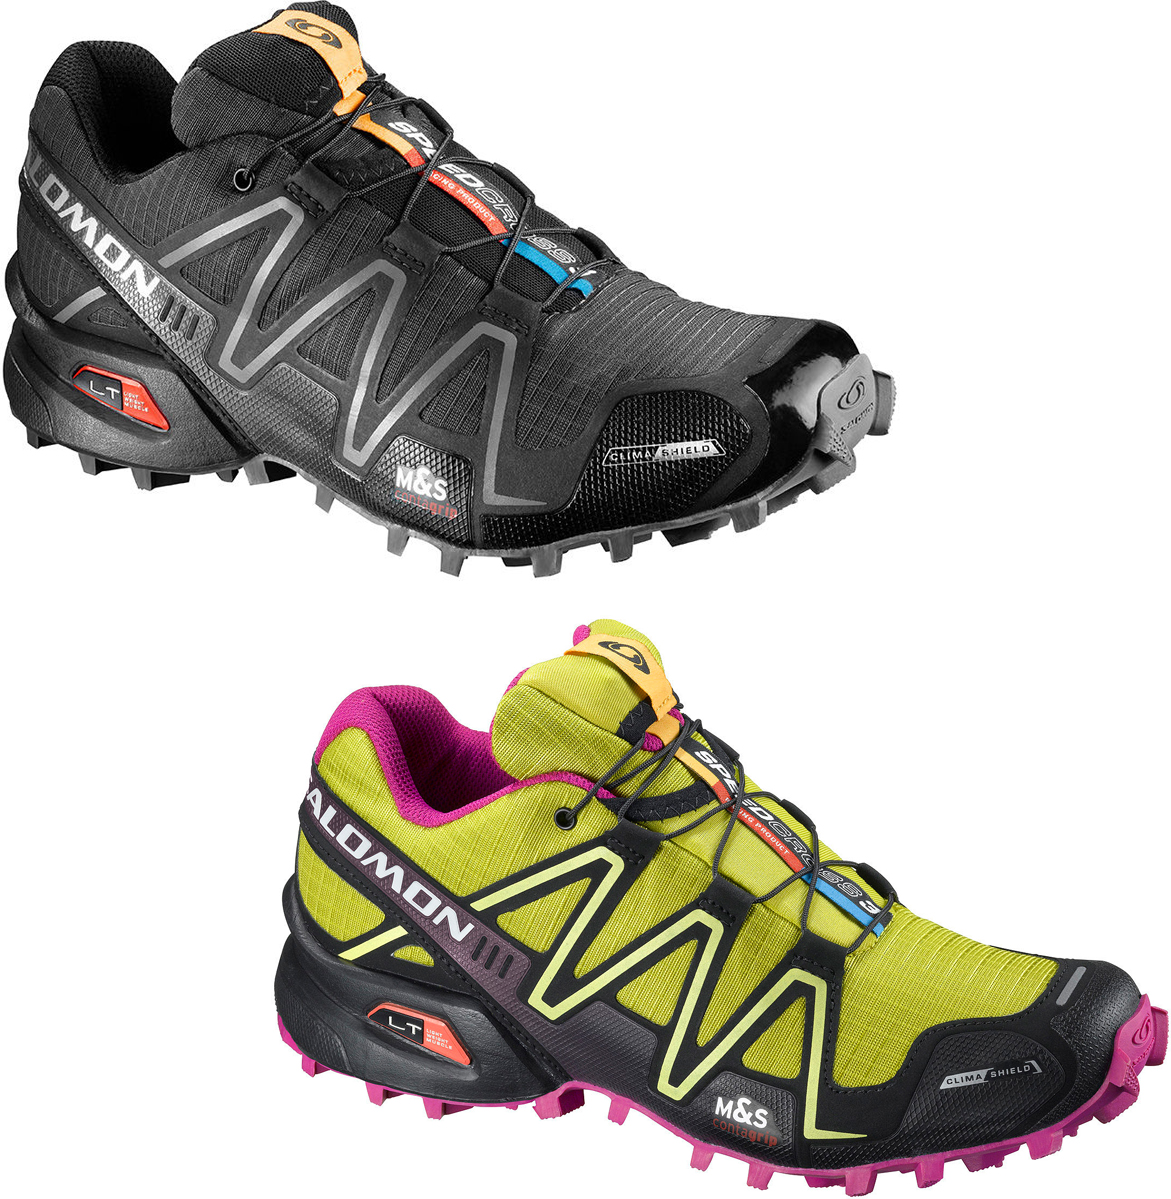 Ss13 Speedcross 3 Ladies Shoes InternalSalomon Wiggle France Cs Y7gfbyv6